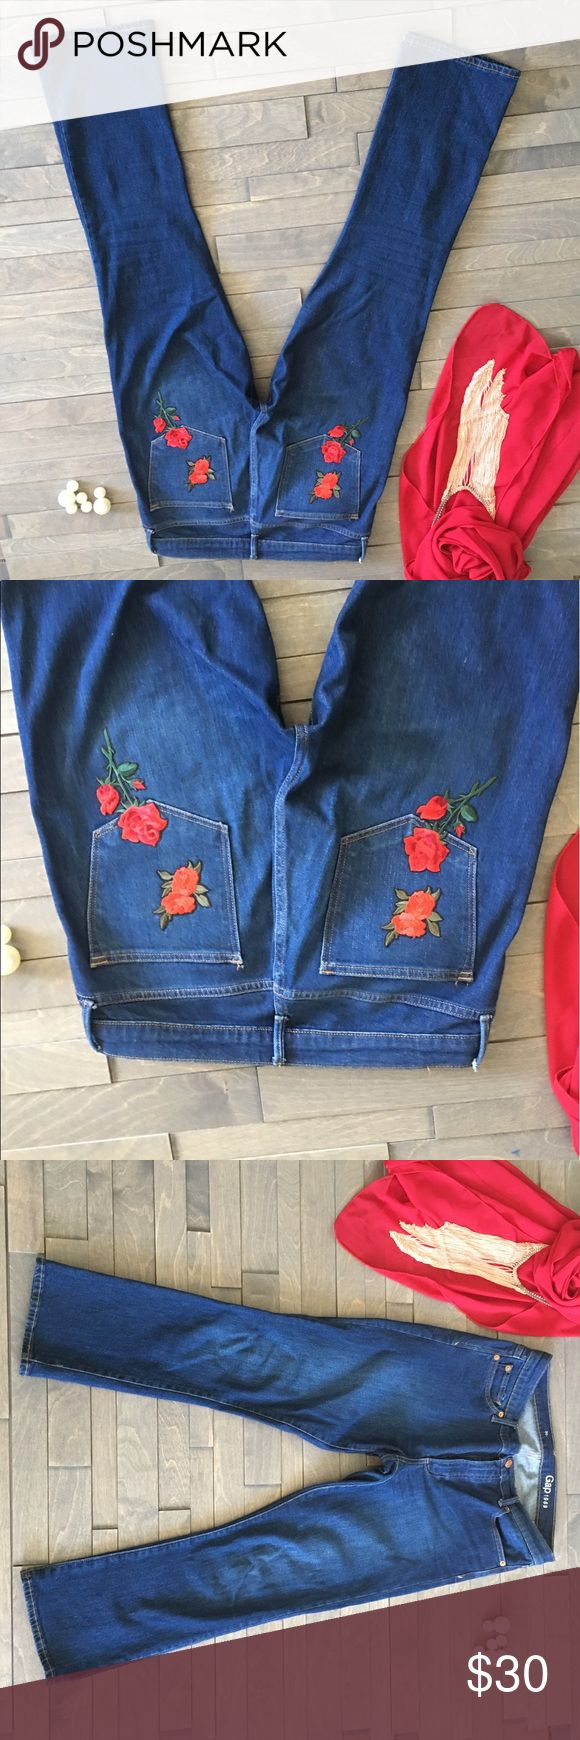 Gap jean denim with Embroidered roses 🌹 Good design GAP Jeans Boot Cut